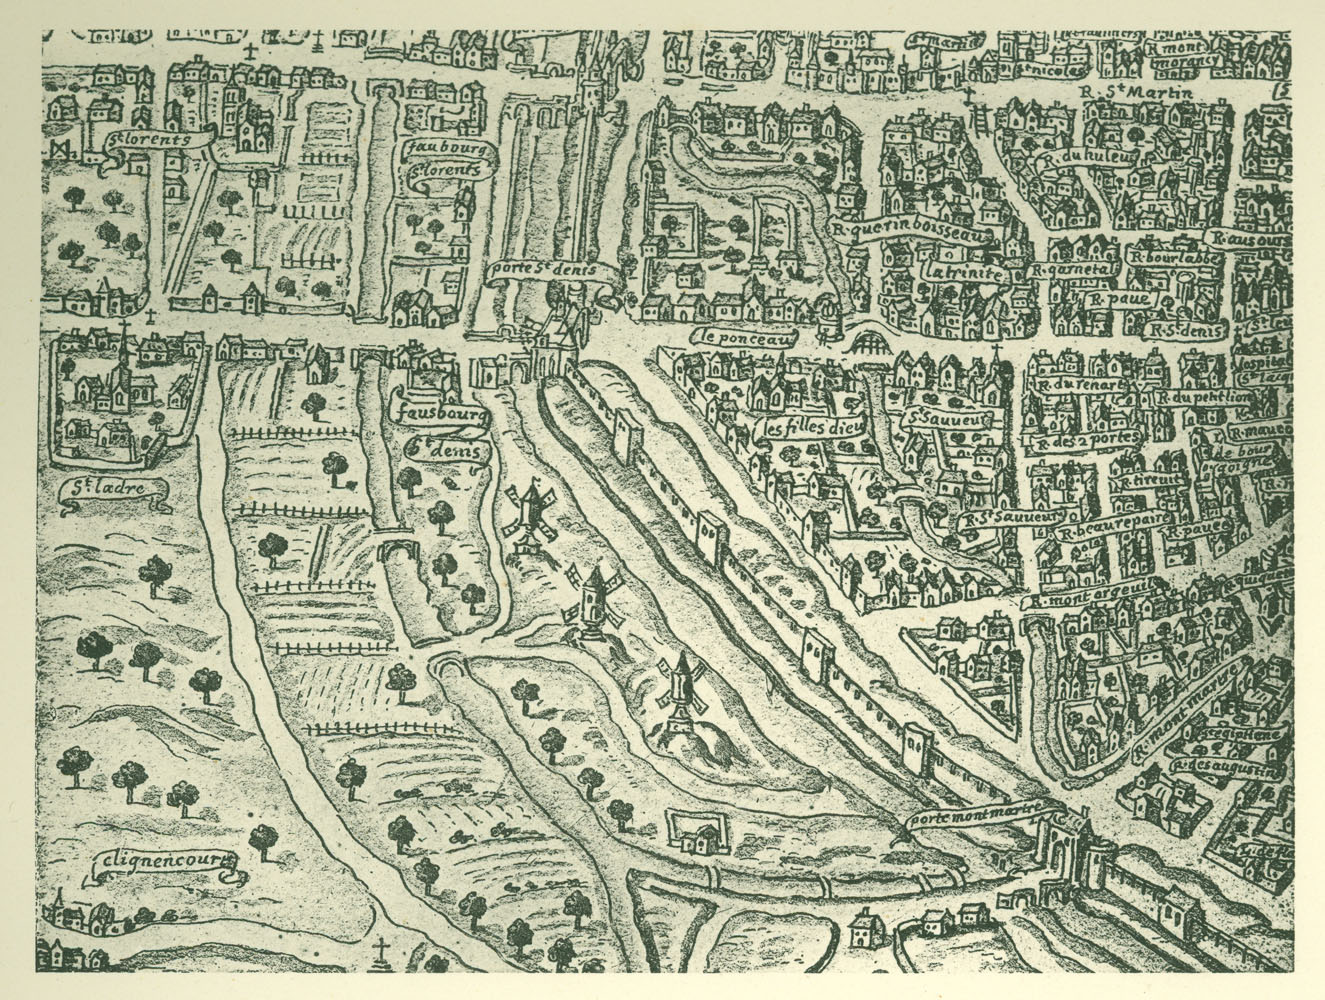 Fragment from the Tapisserie map of Paris